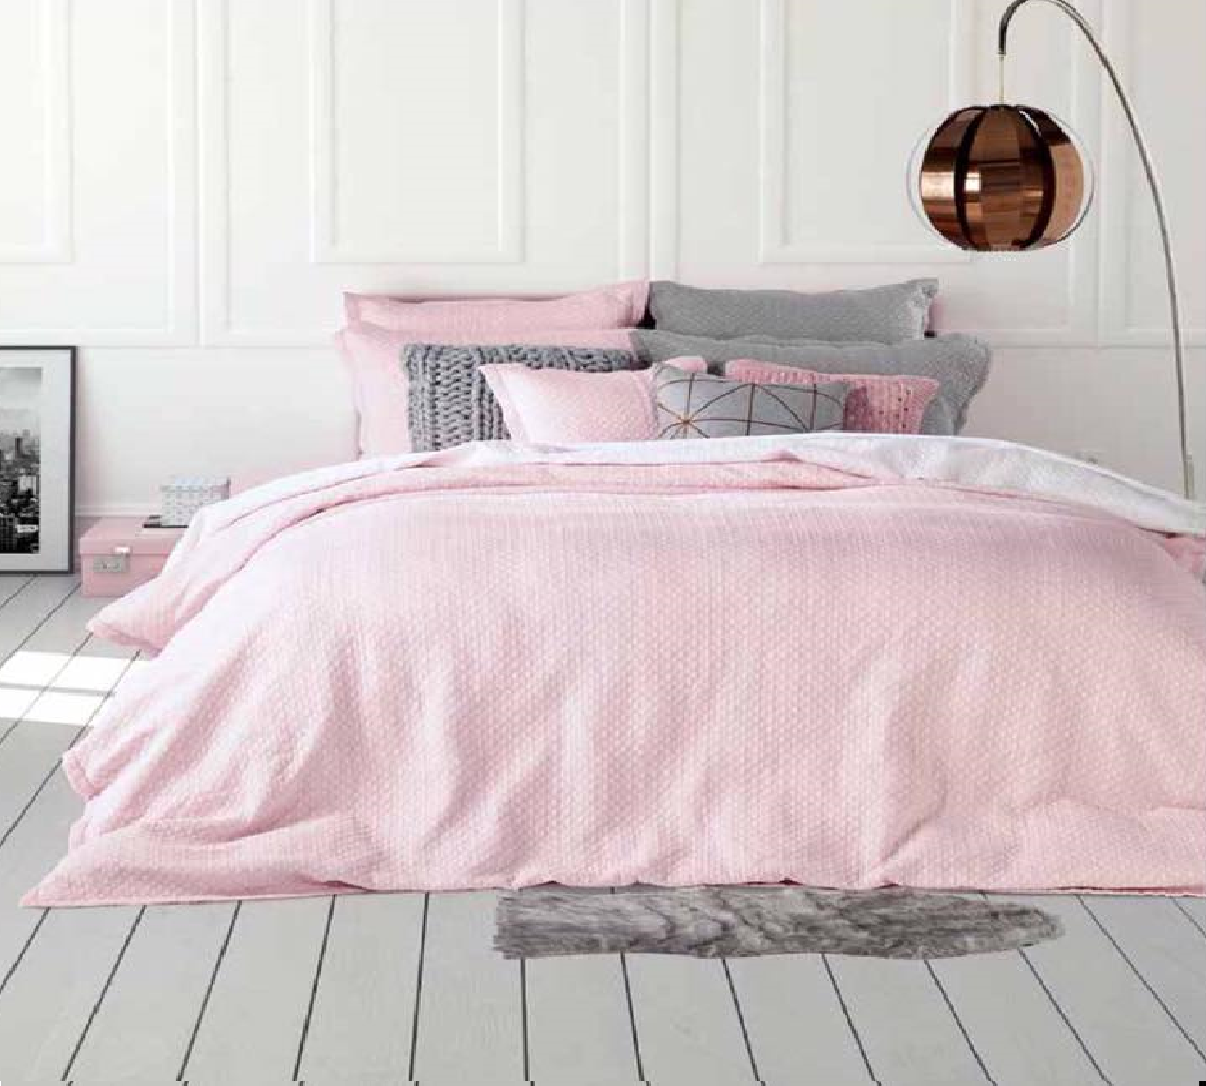 on adore la nouvelel housse de couette chanel en blanc rose ou gris p le d co maison en 2018. Black Bedroom Furniture Sets. Home Design Ideas